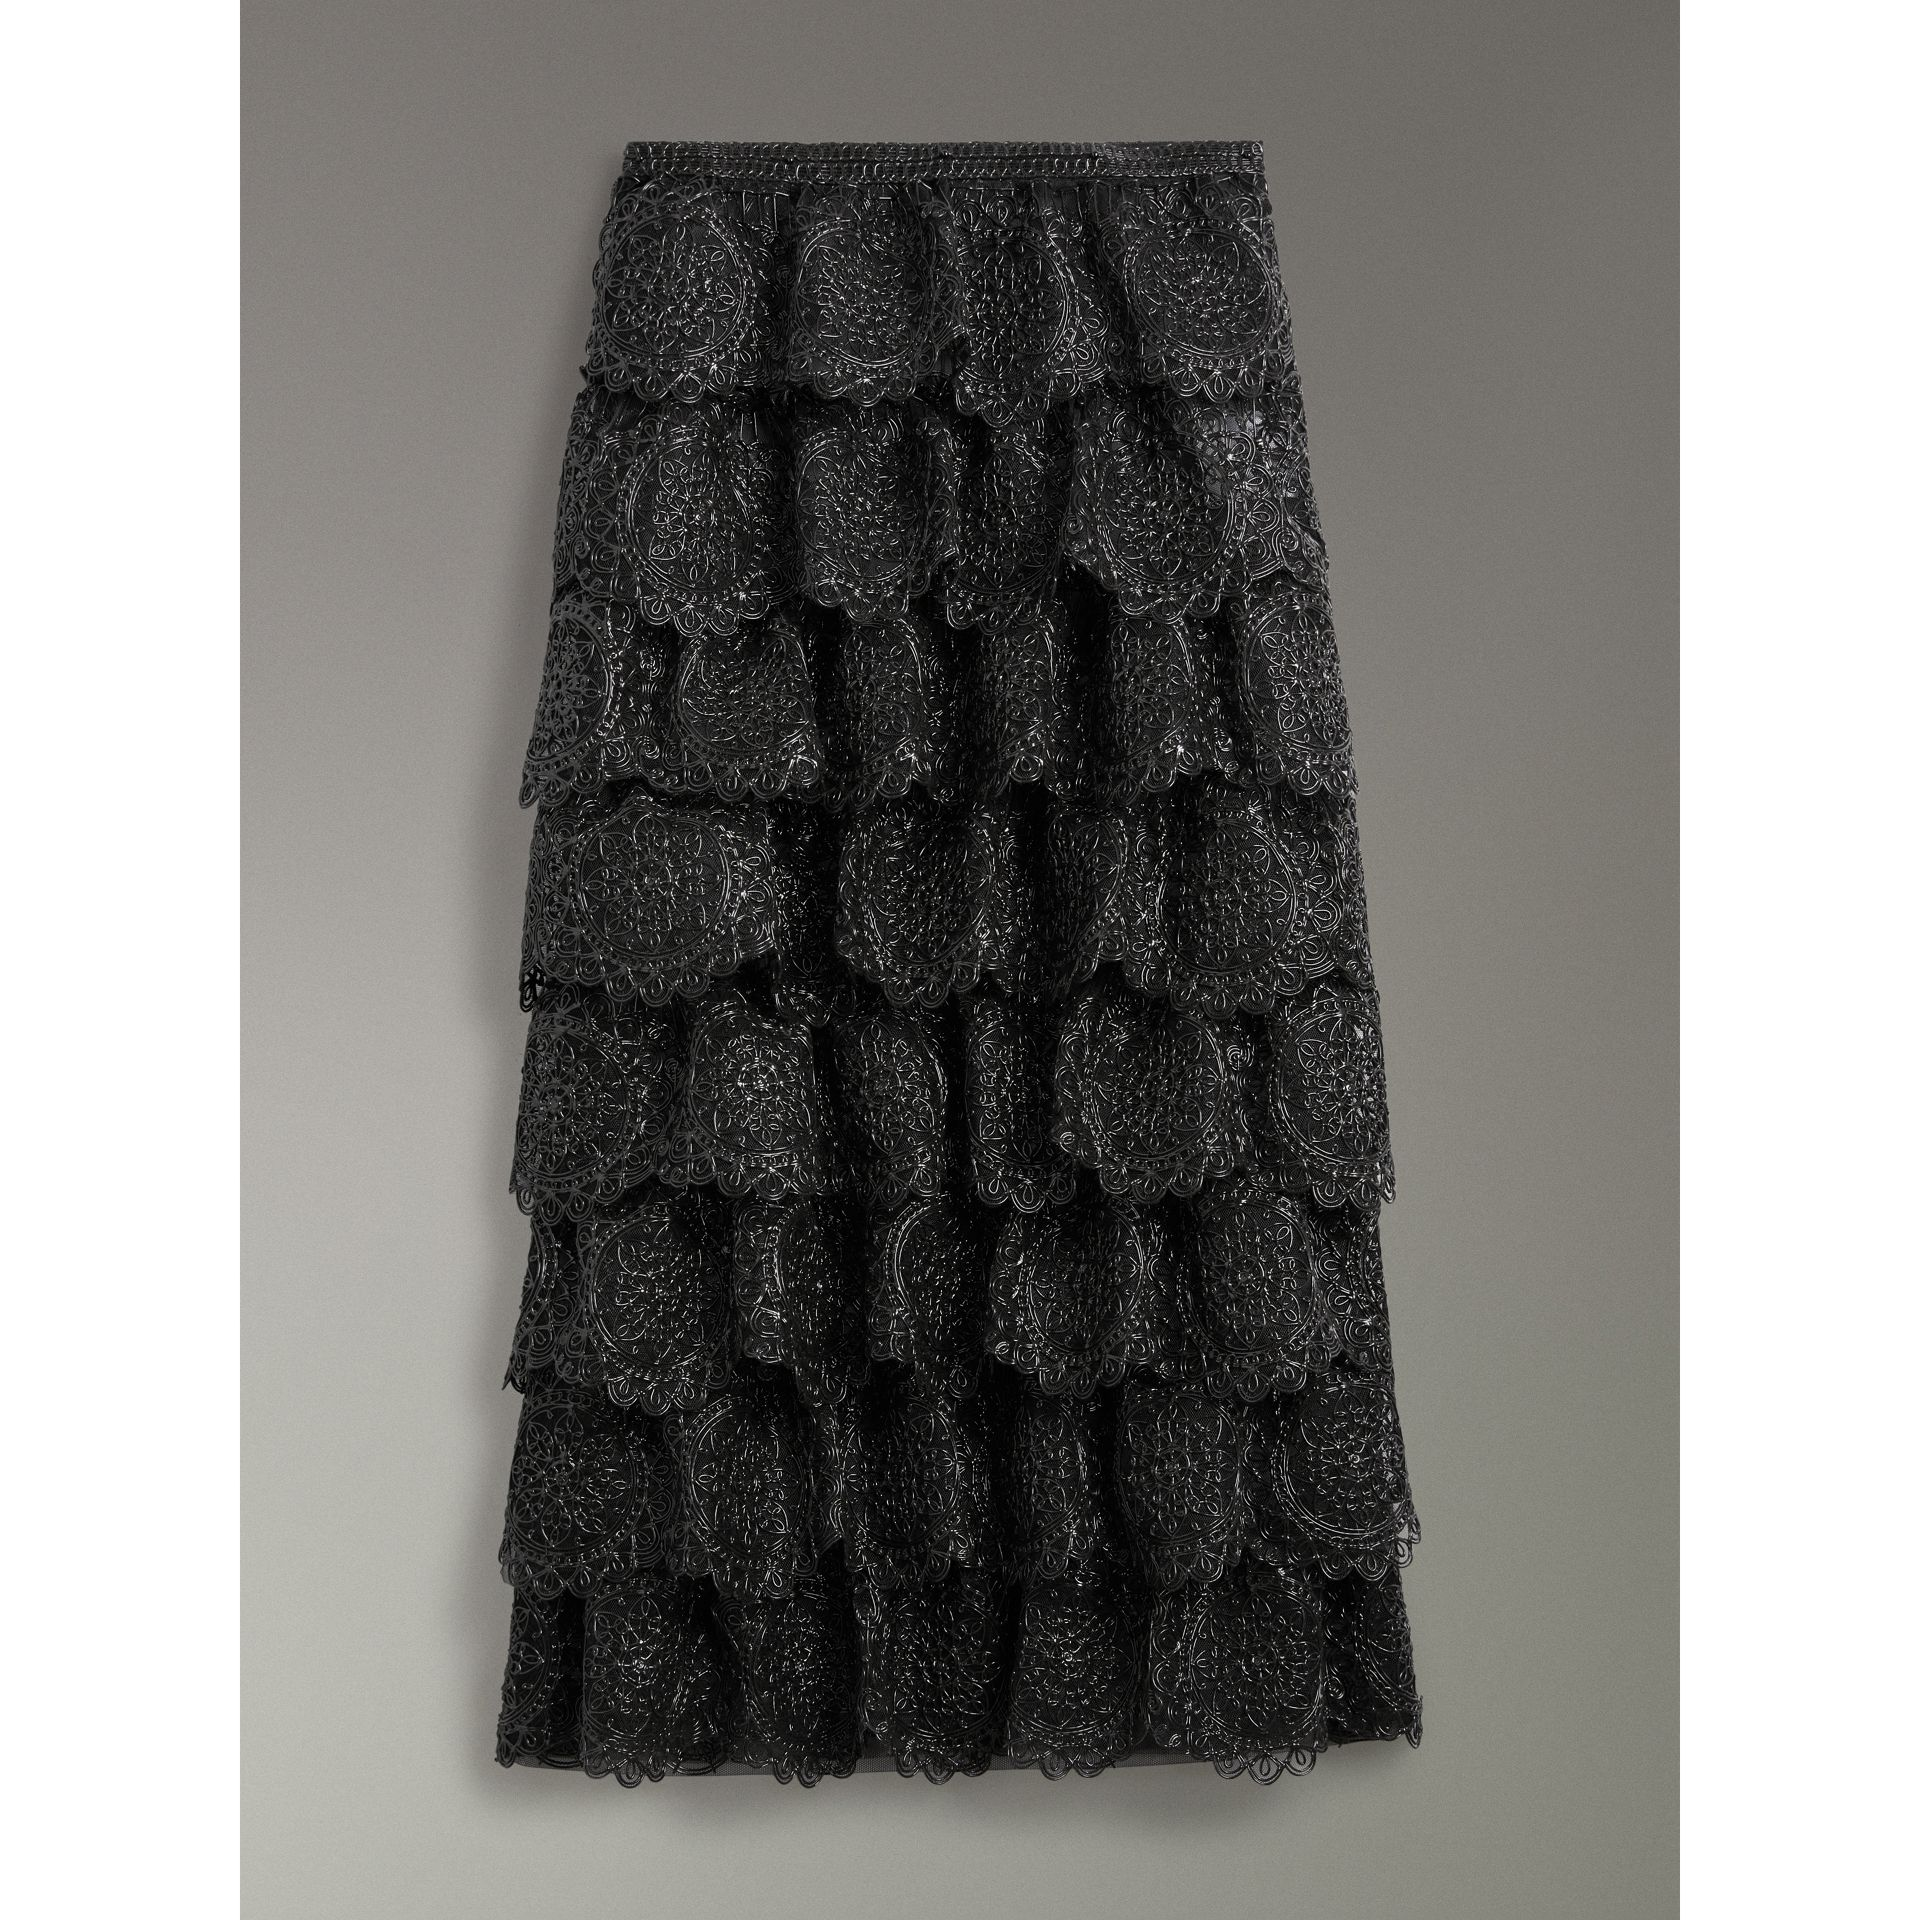 Tiered Silicone Lace Skirt in Black - Women | Burberry - gallery image 3